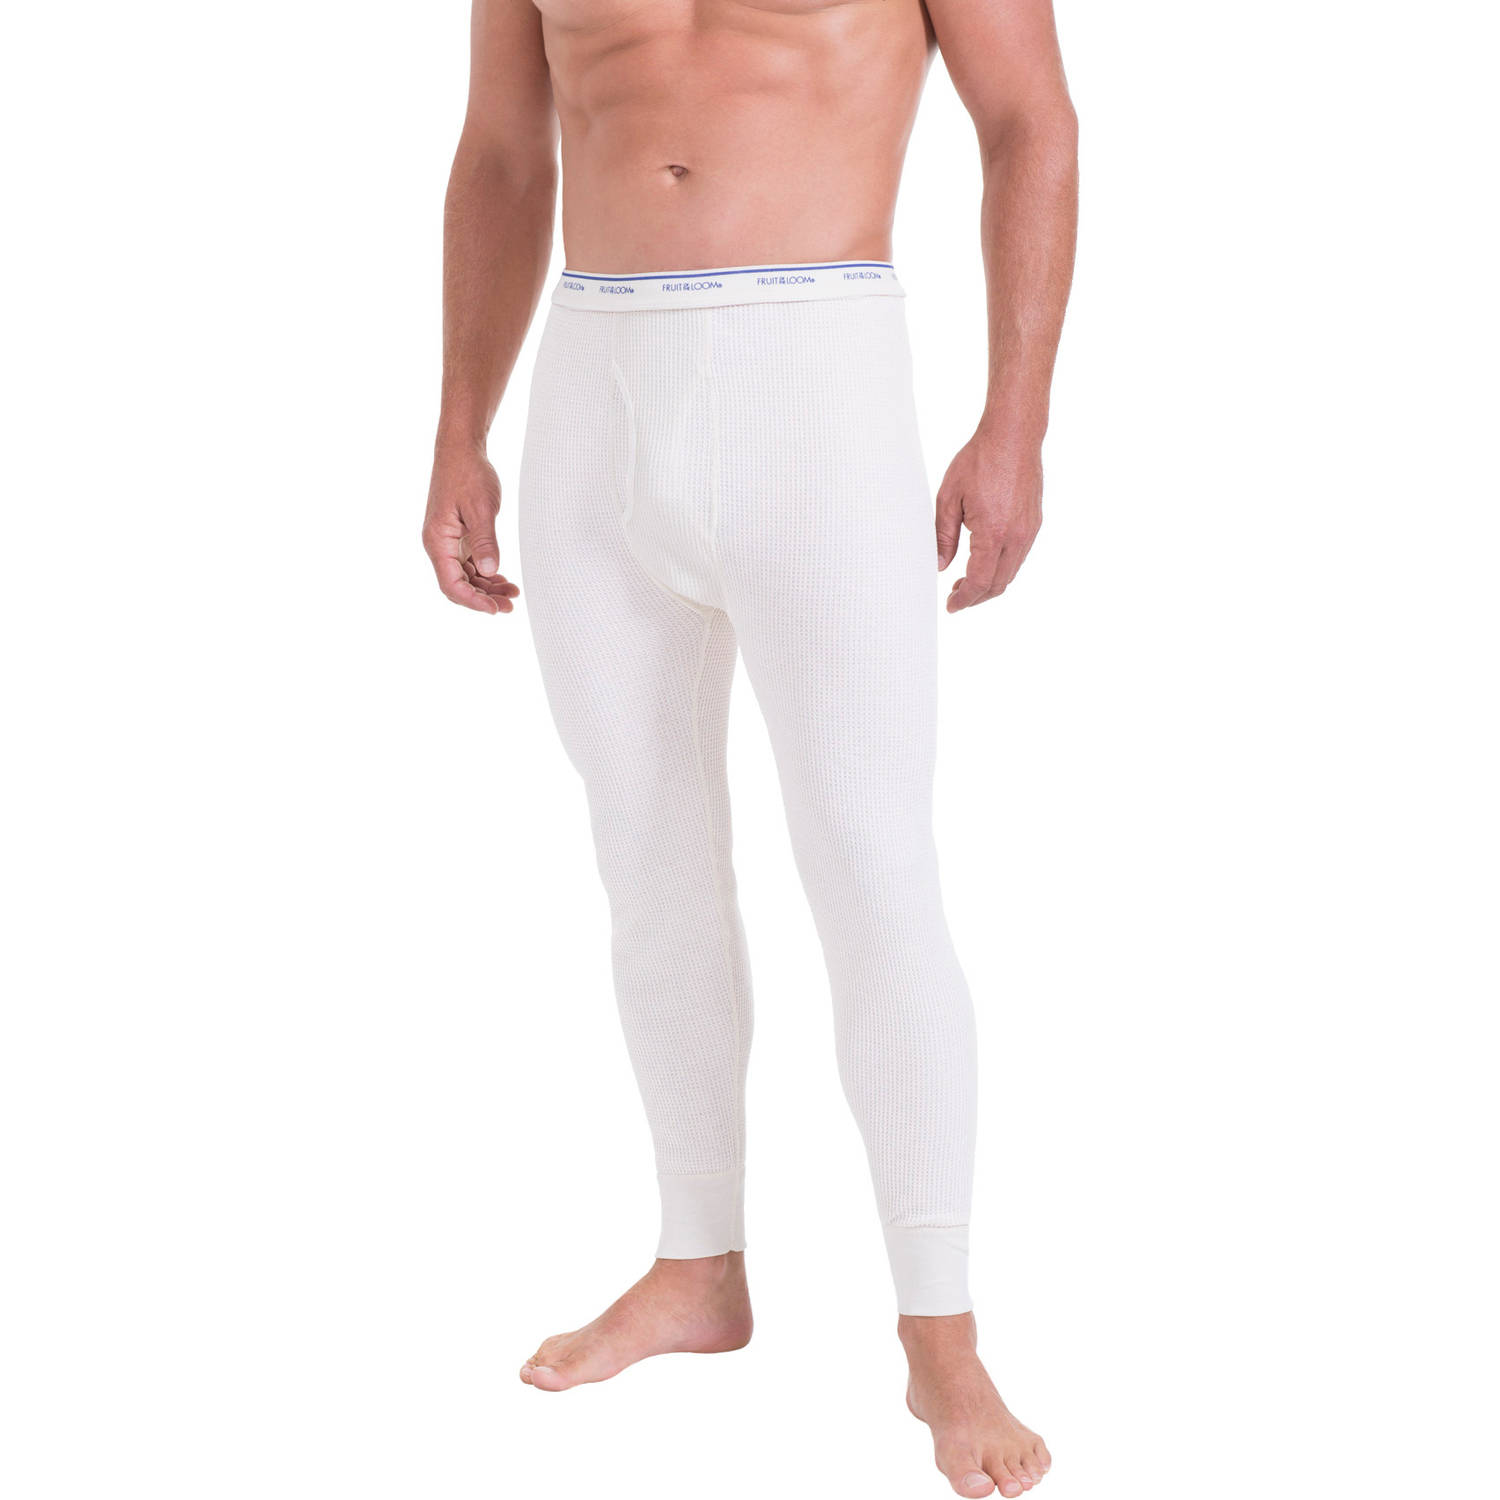 Fruit of the Loom Men's Classic Thermal Underwear Bottom - Walmart.com